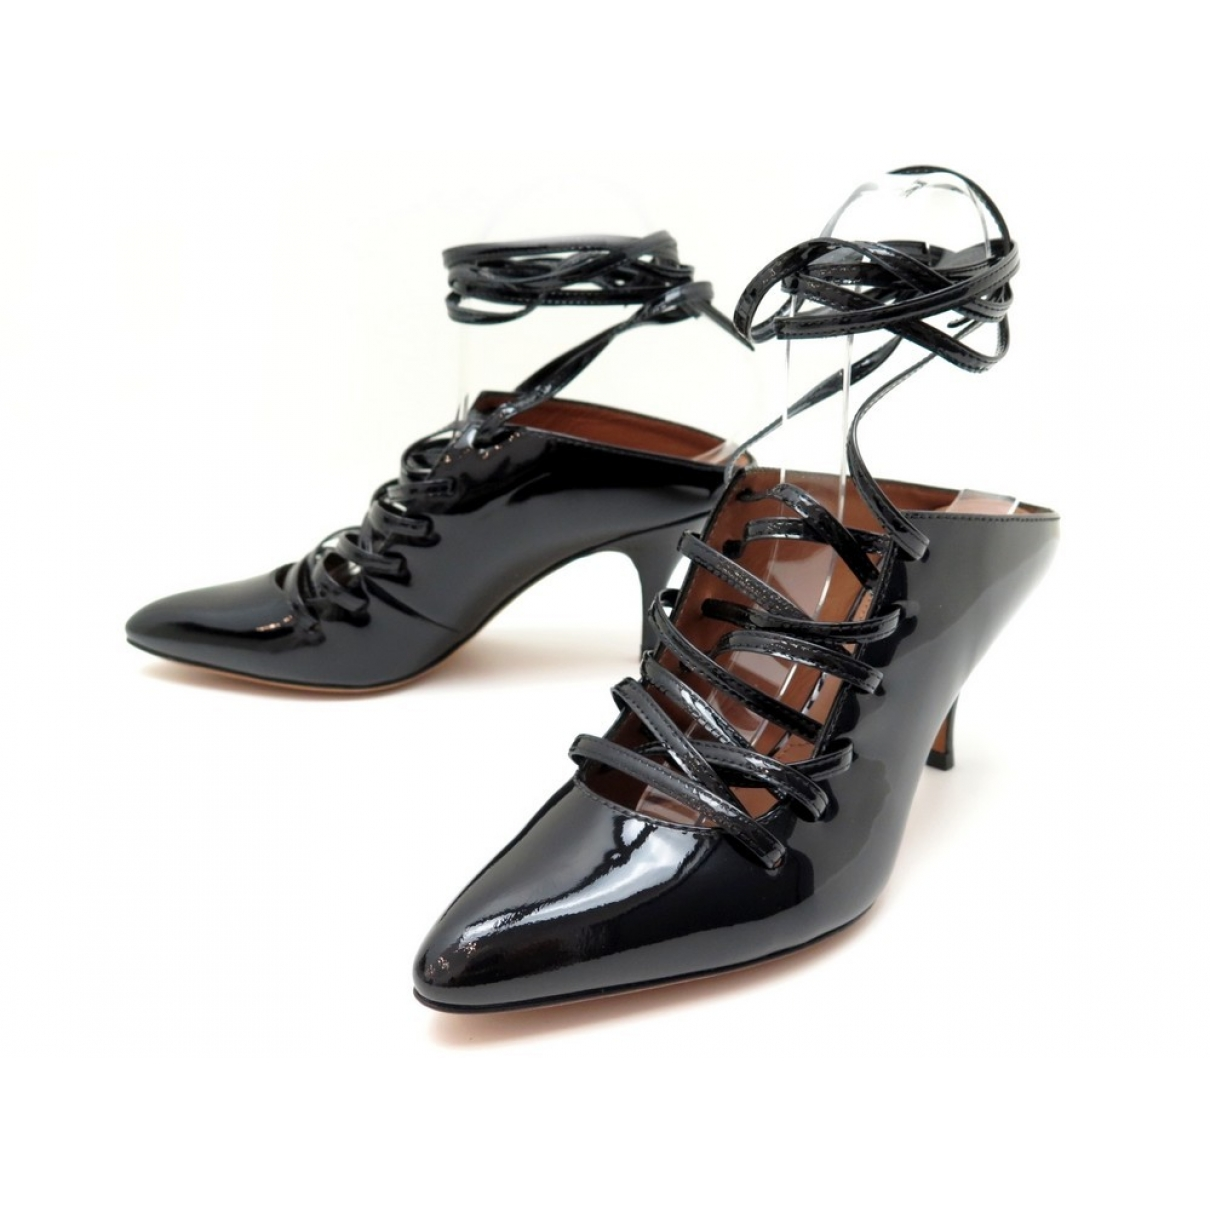 Givenchy \N Pumps in  Schwarz Lackleder